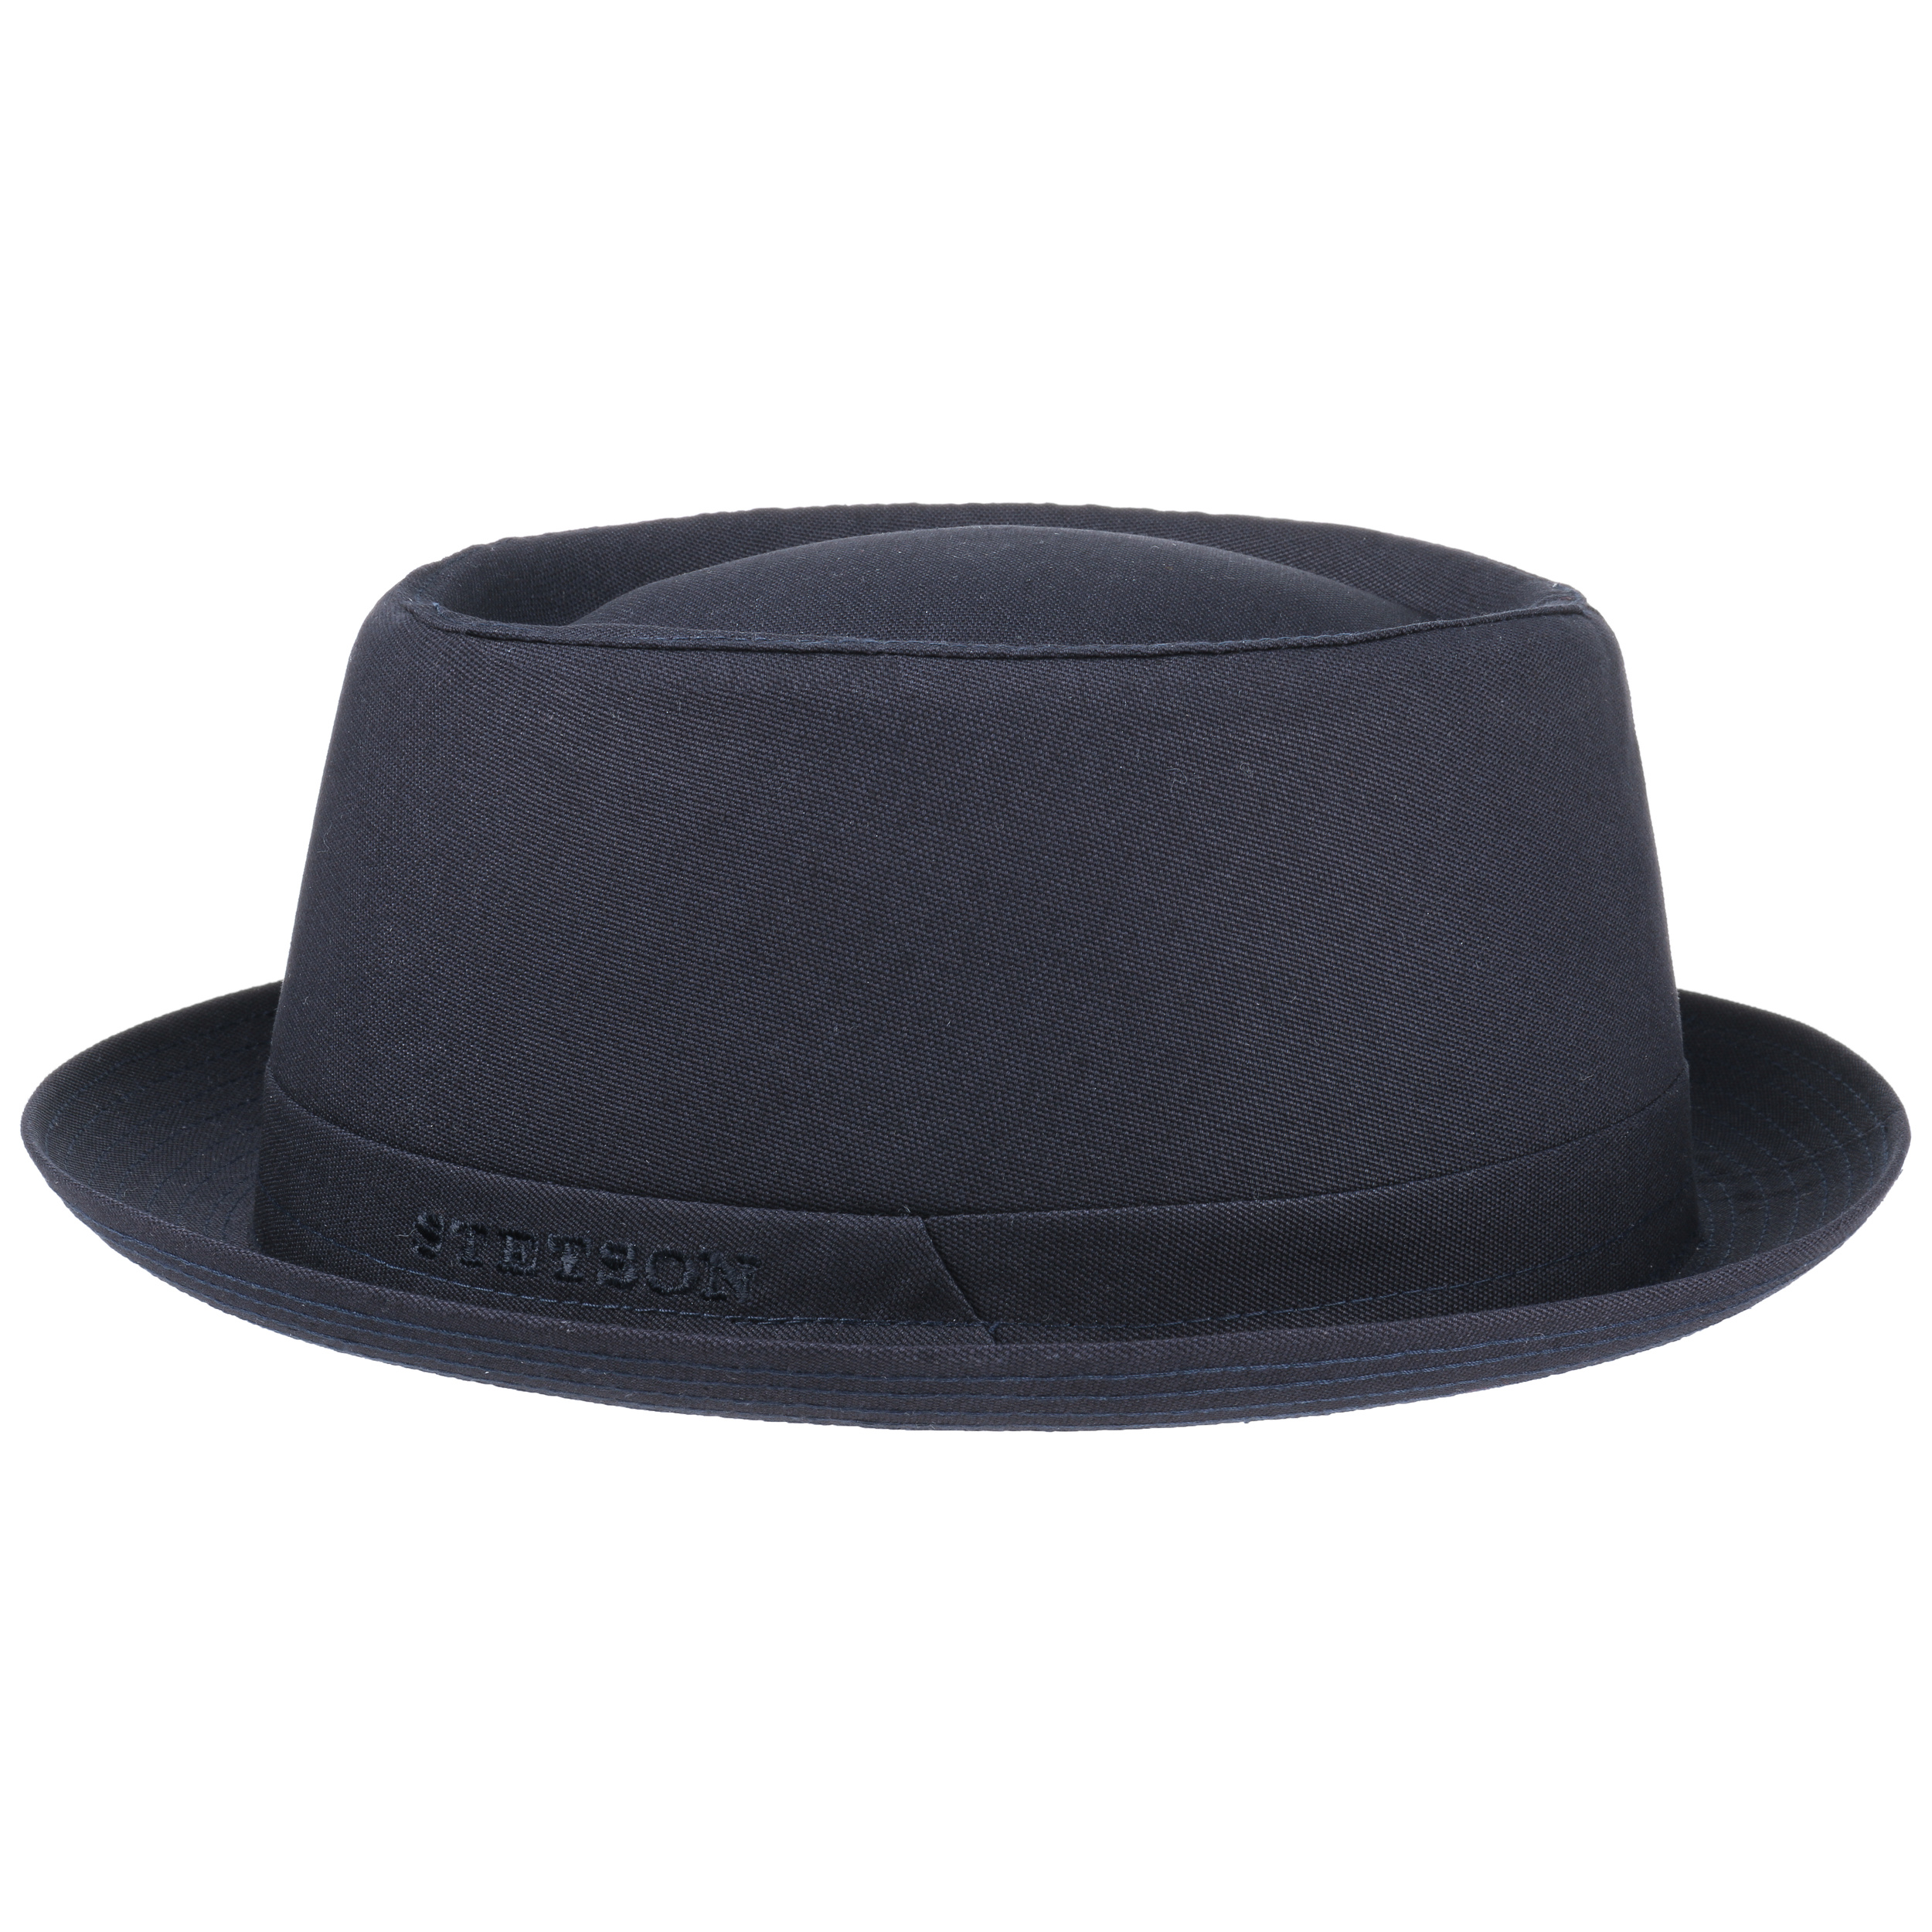 Pie 69 00 Stetson € Athens Cotton Pork Cappello By 8OnkwP0X